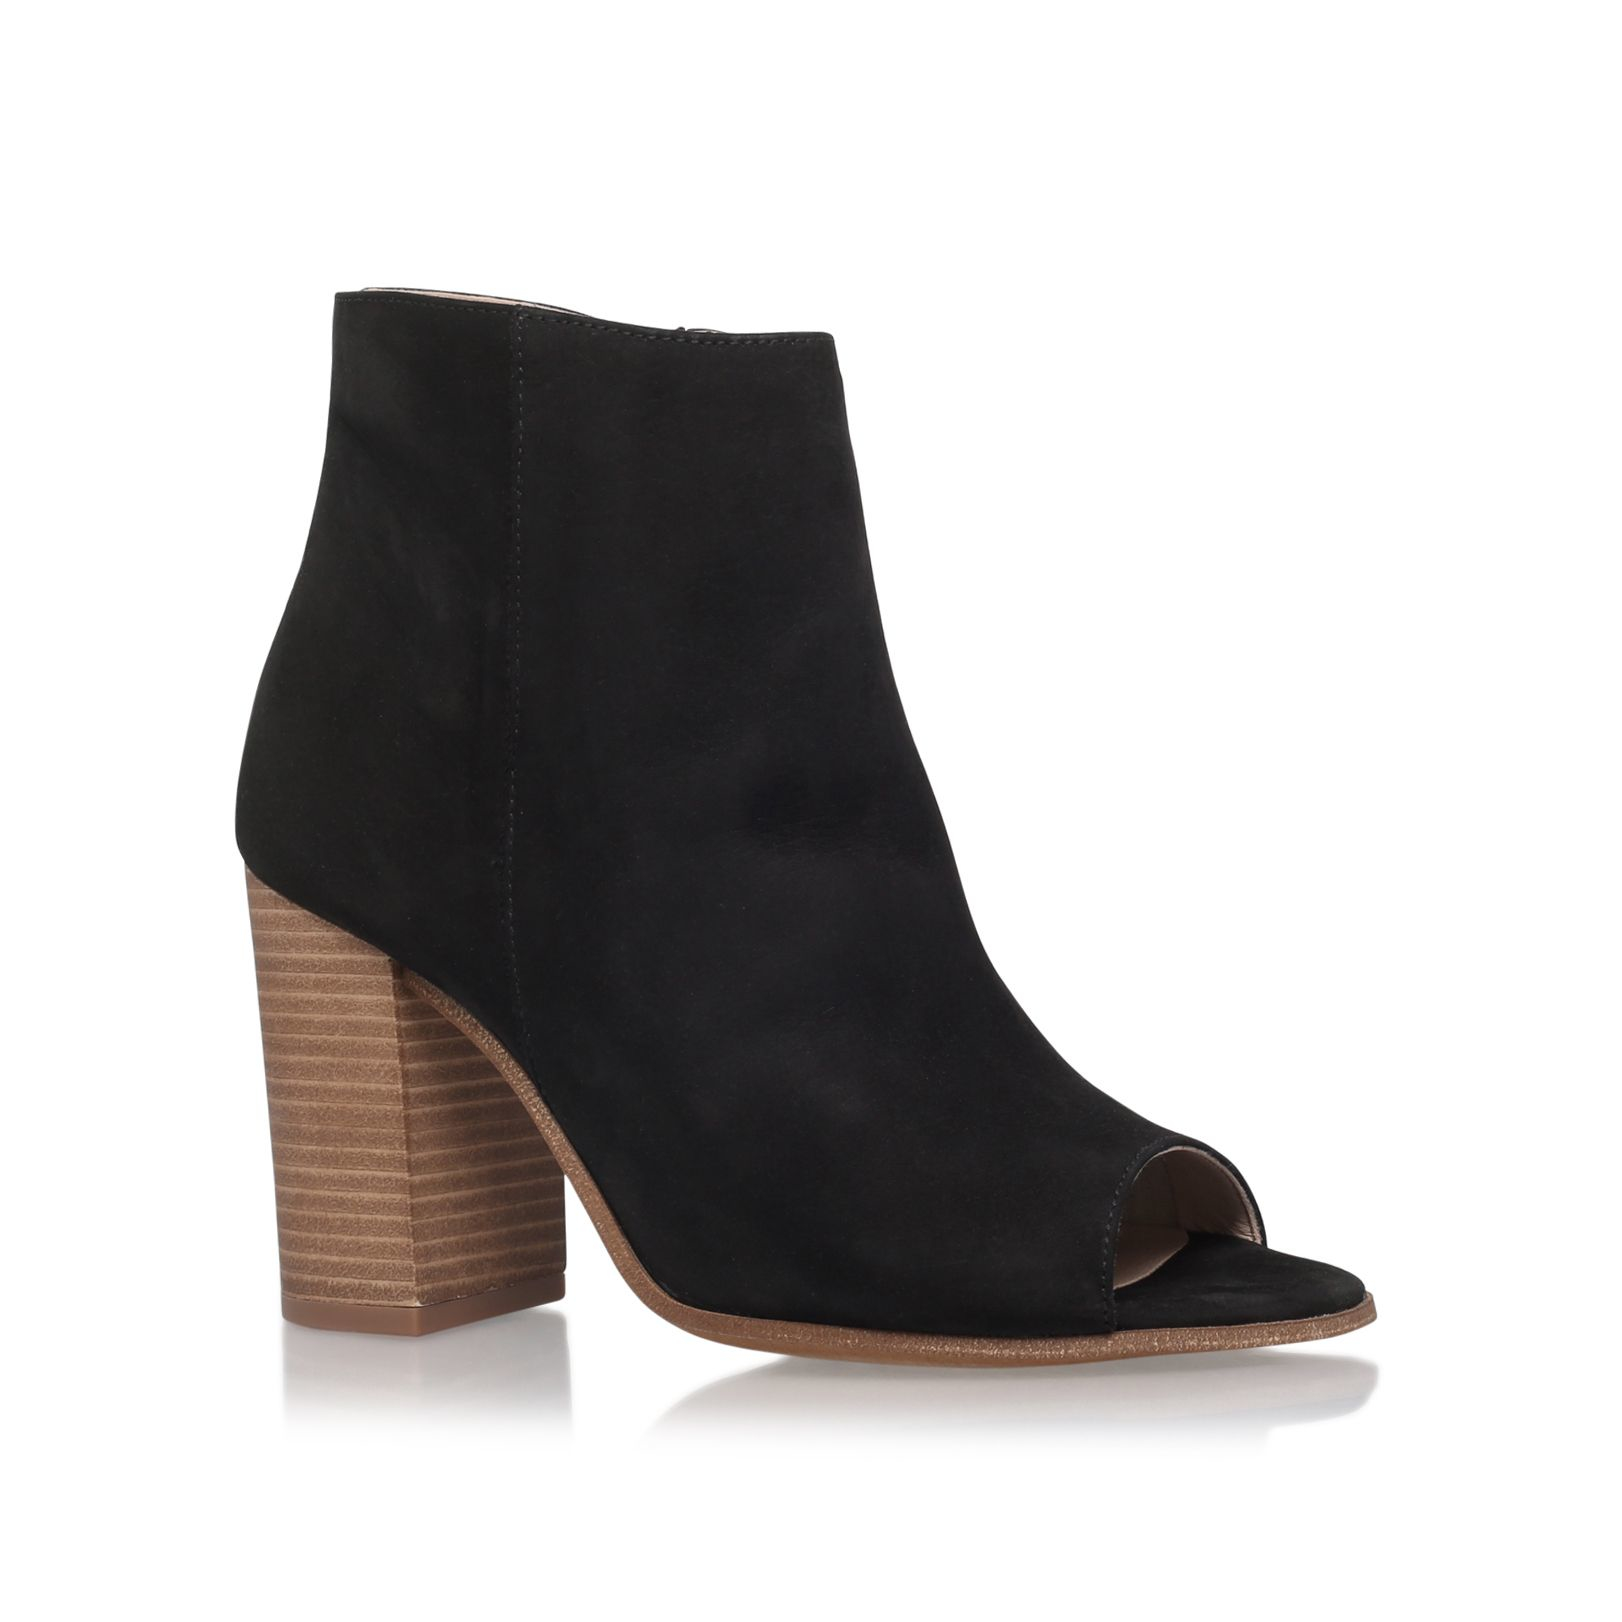 Carvela Kurt Geiger Accord High Heel Shoe Boots In Black | Lyst